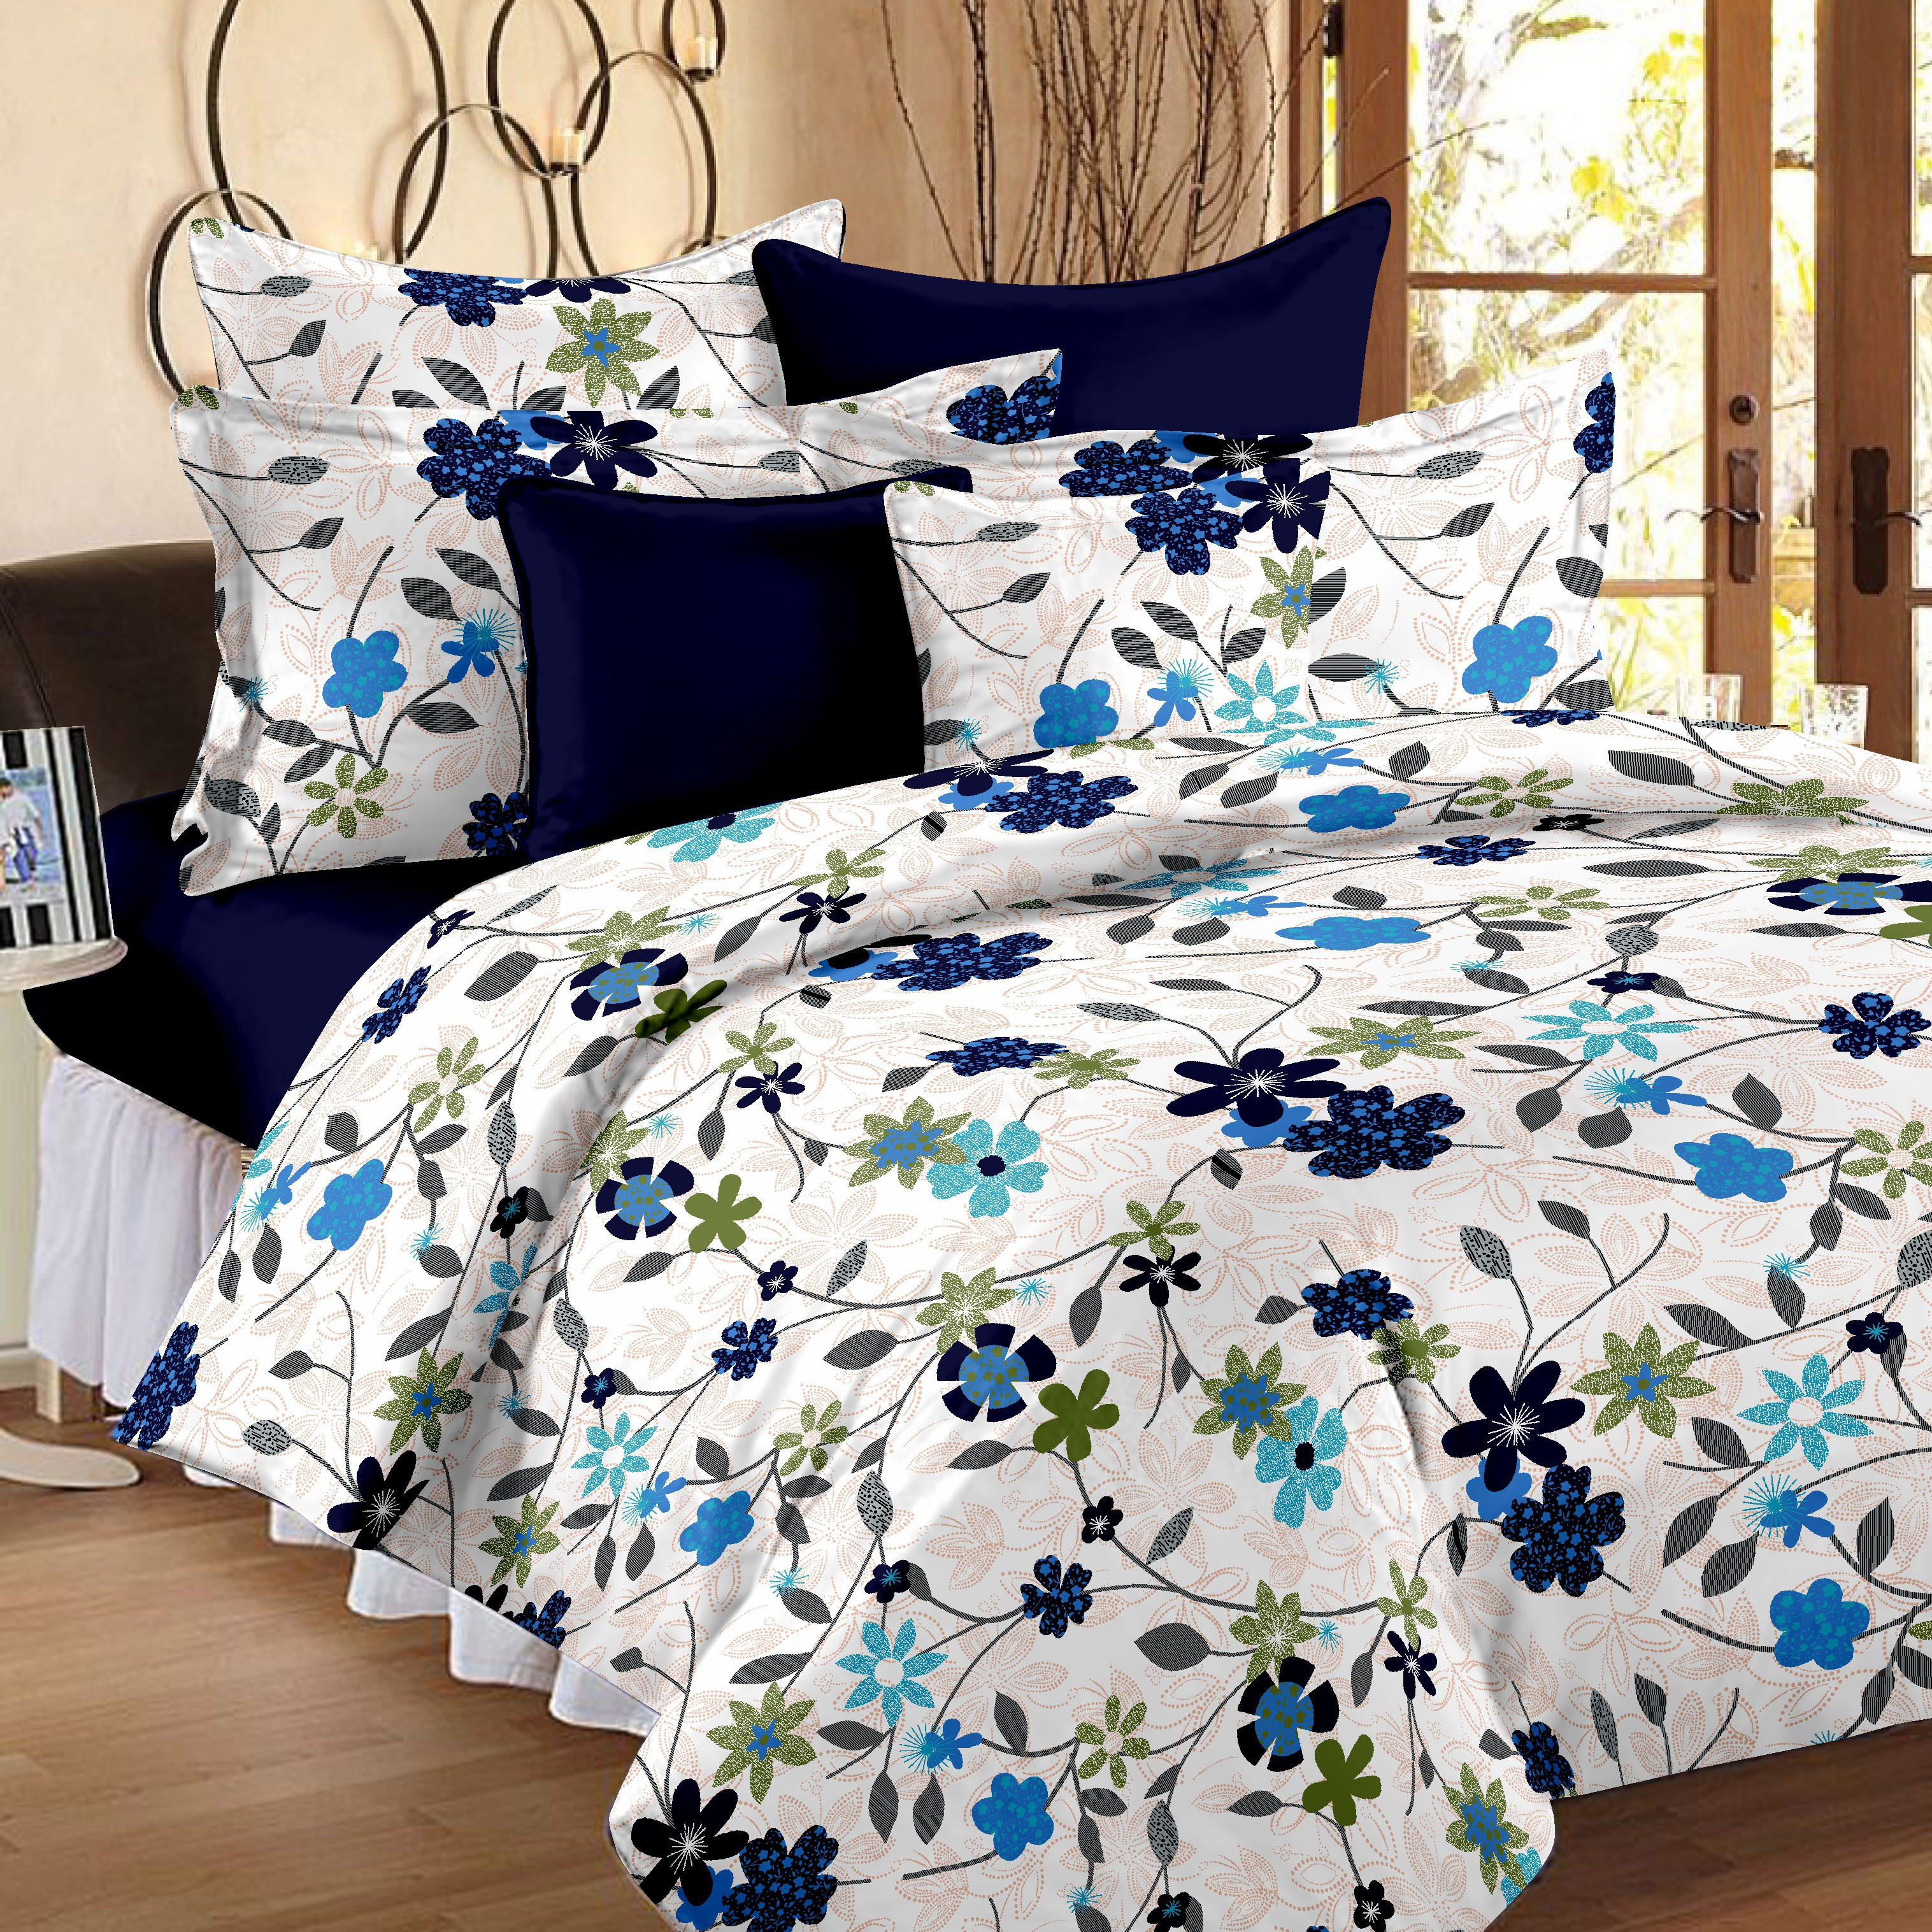 Flipkart - Bedsheets,Curtains & More Under ₹599